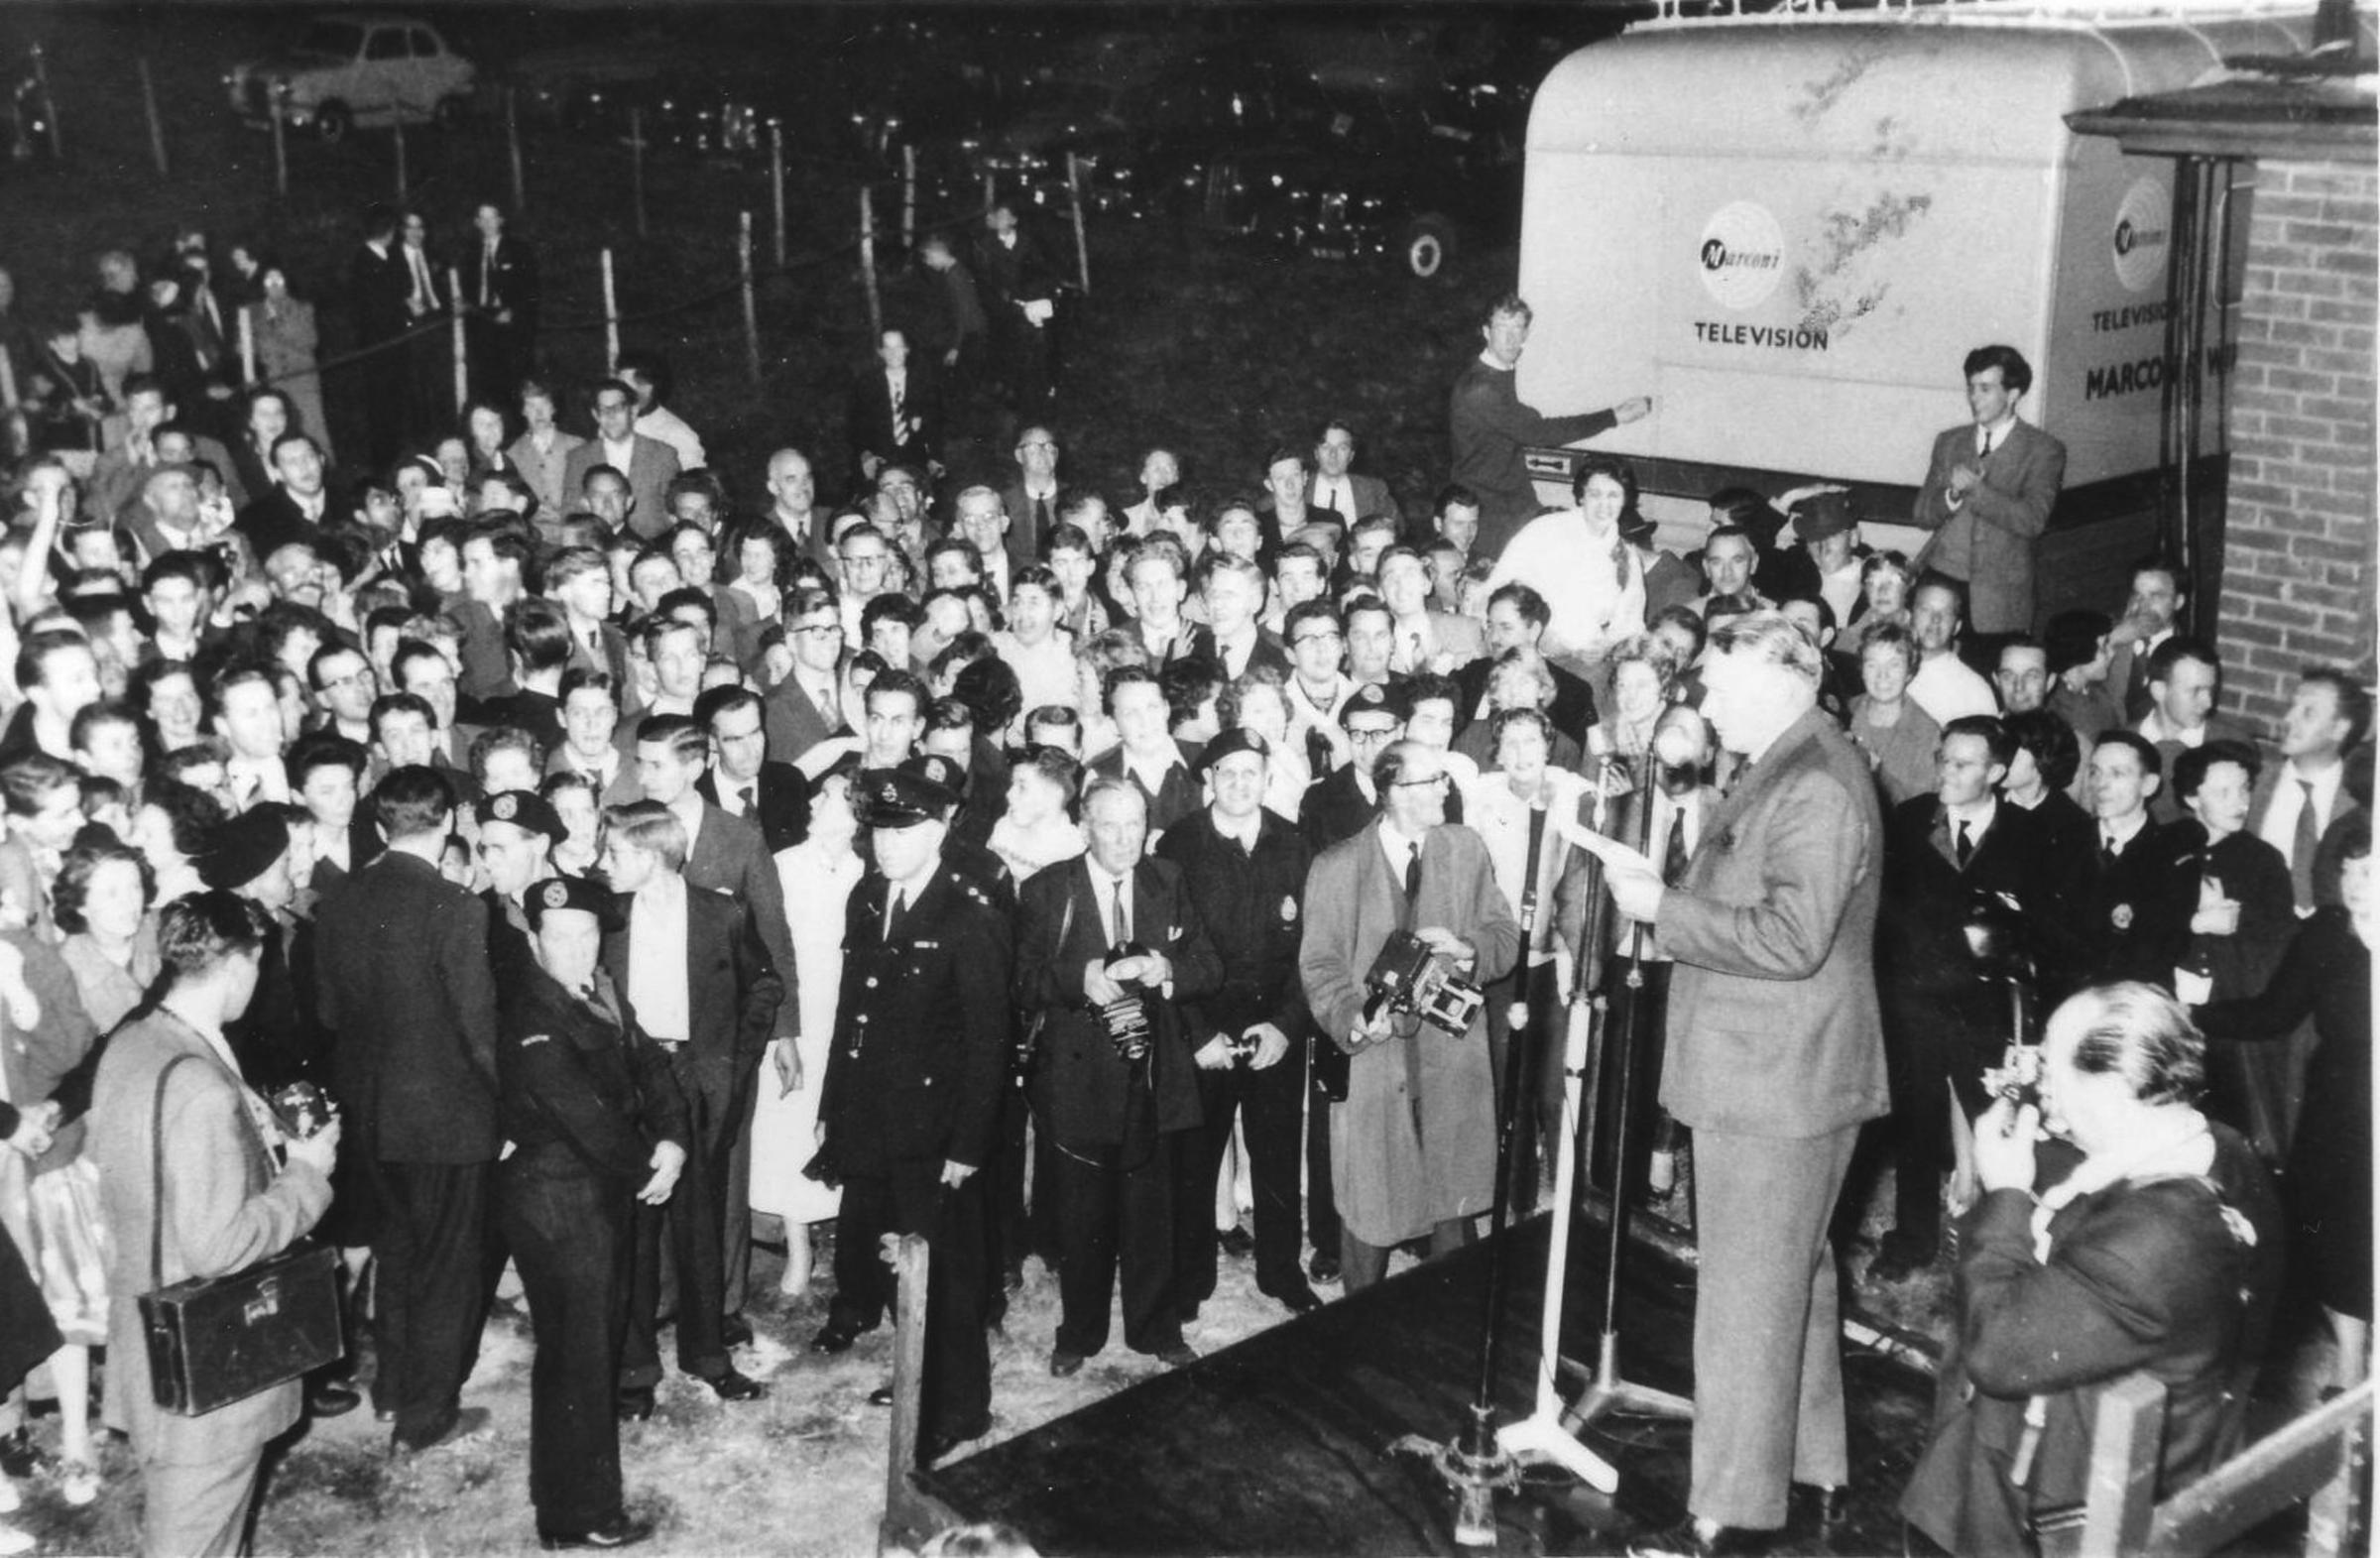 Crowds gather - the 1959 election results are read out in Billericay